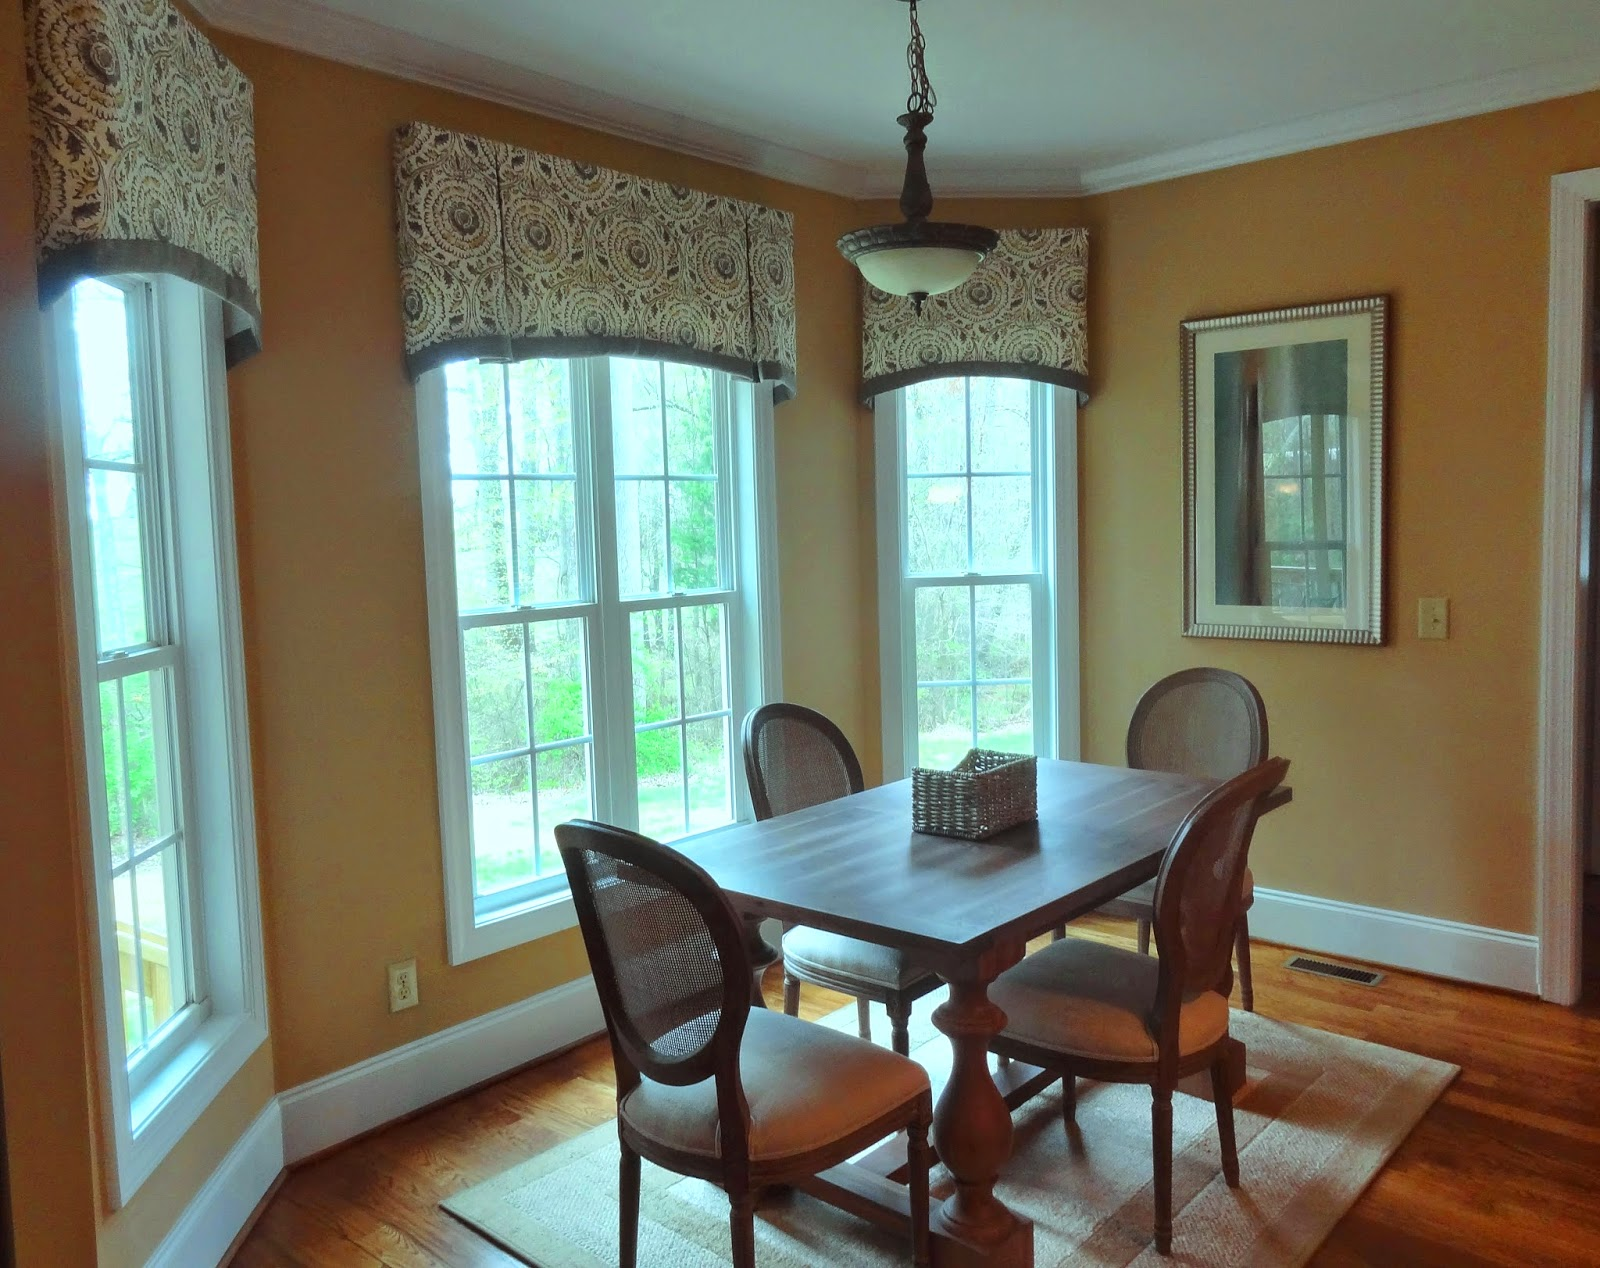 You can create the illusion of taller windows by adding window valances  (see before and after).